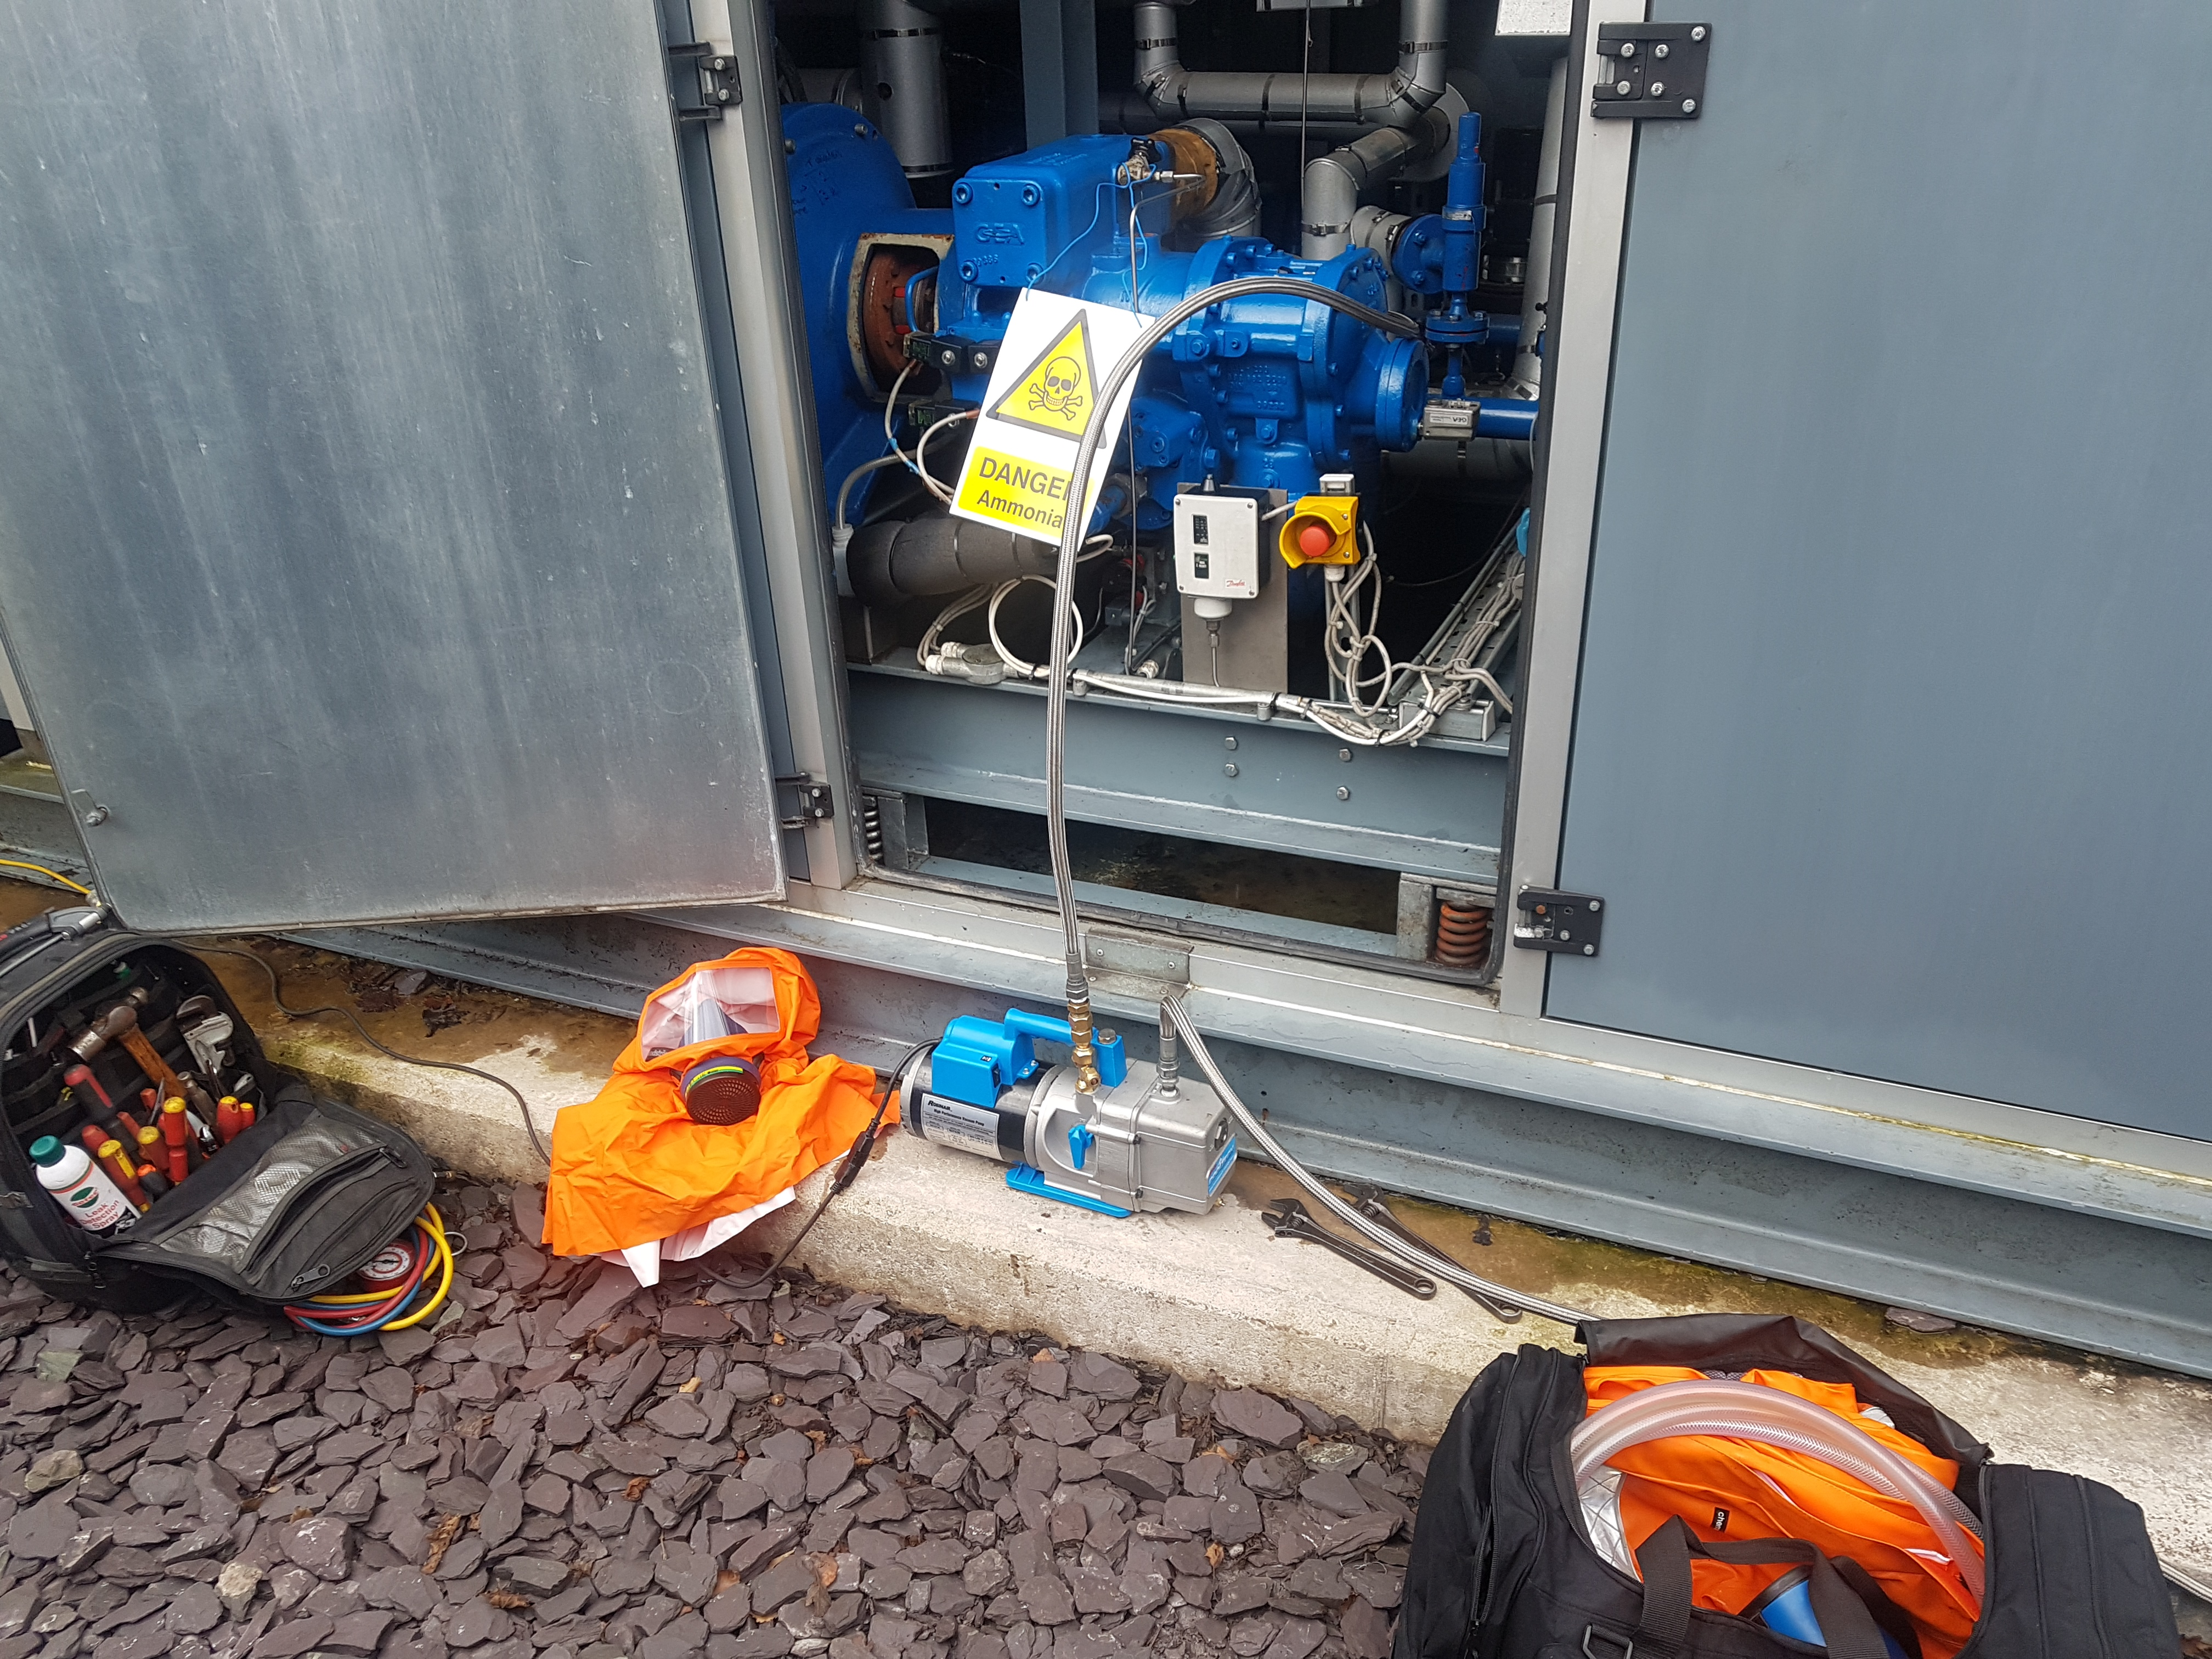 Industrial refrigeration equipment outside chiller